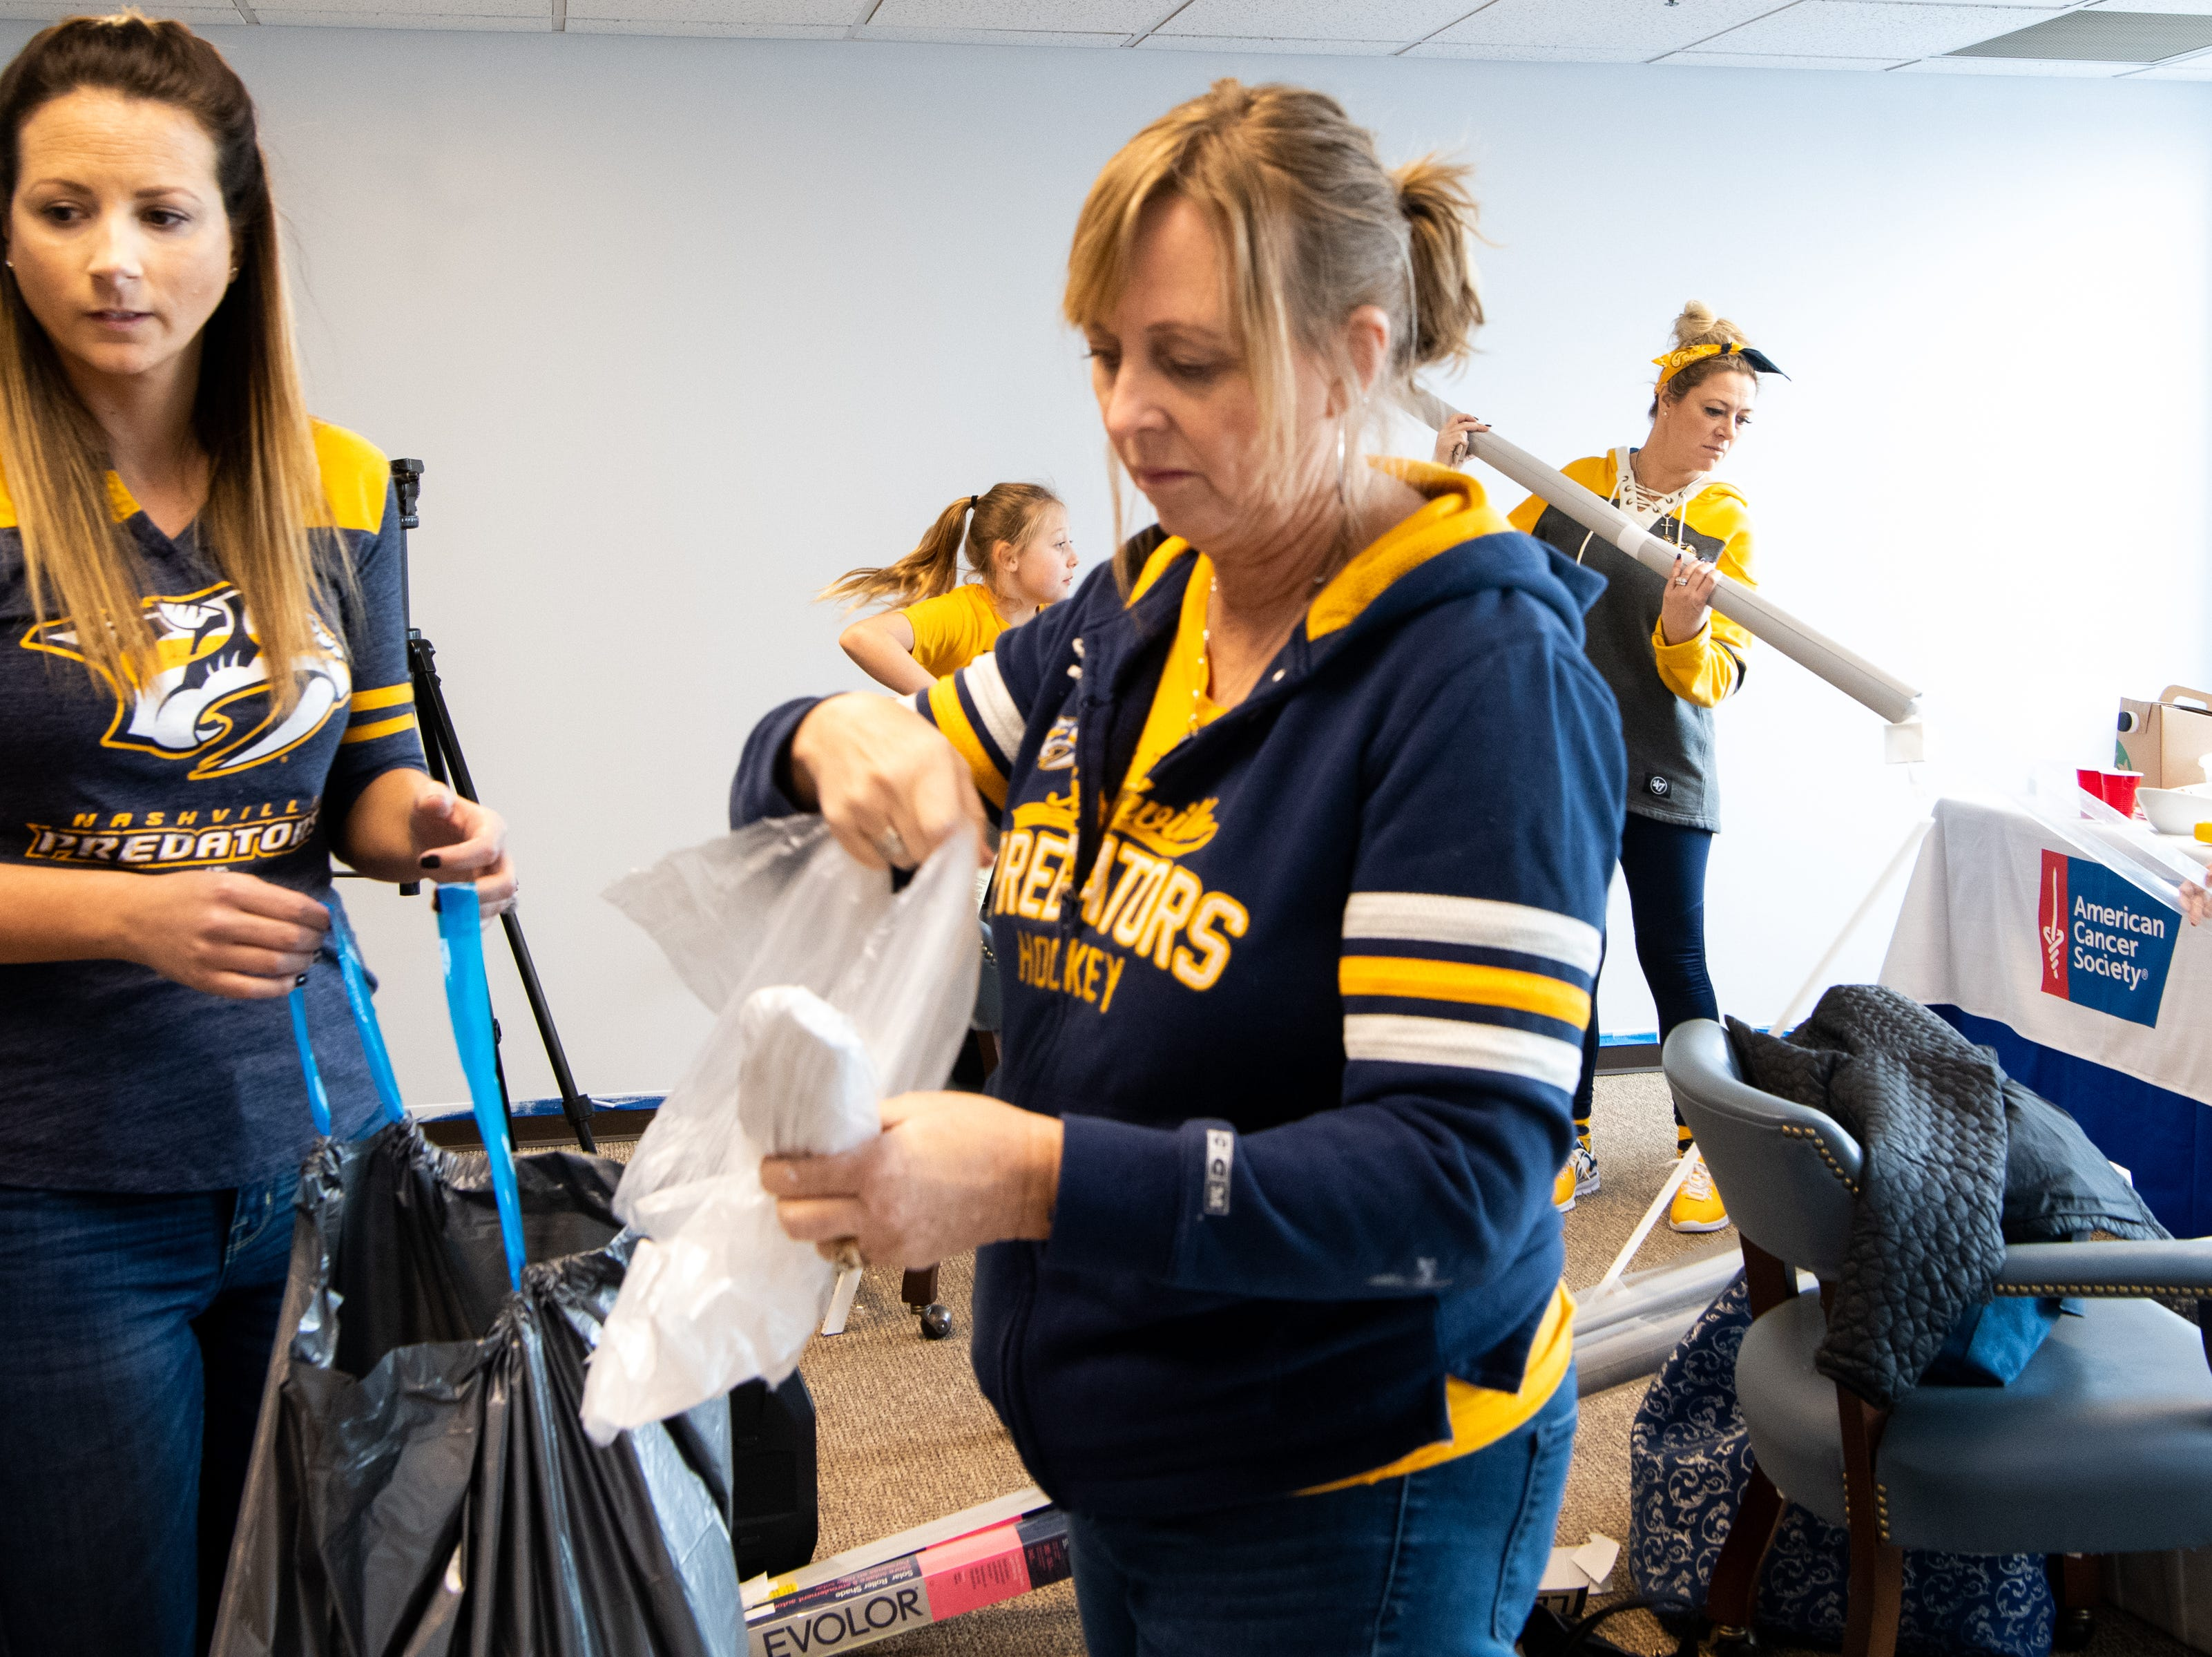 Marlene Vanderklok, Rhonda McCarthy, Kristen Laviolette and Rhonda McCarthy (from left) arrange materials to makeover the entertainment room at Memorial Foundation Hope Lodge as a project for the wives, girlfriends and fiancees of the Nashville Predators Tuesday, March 12, 2019, in Nashville, Tenn.